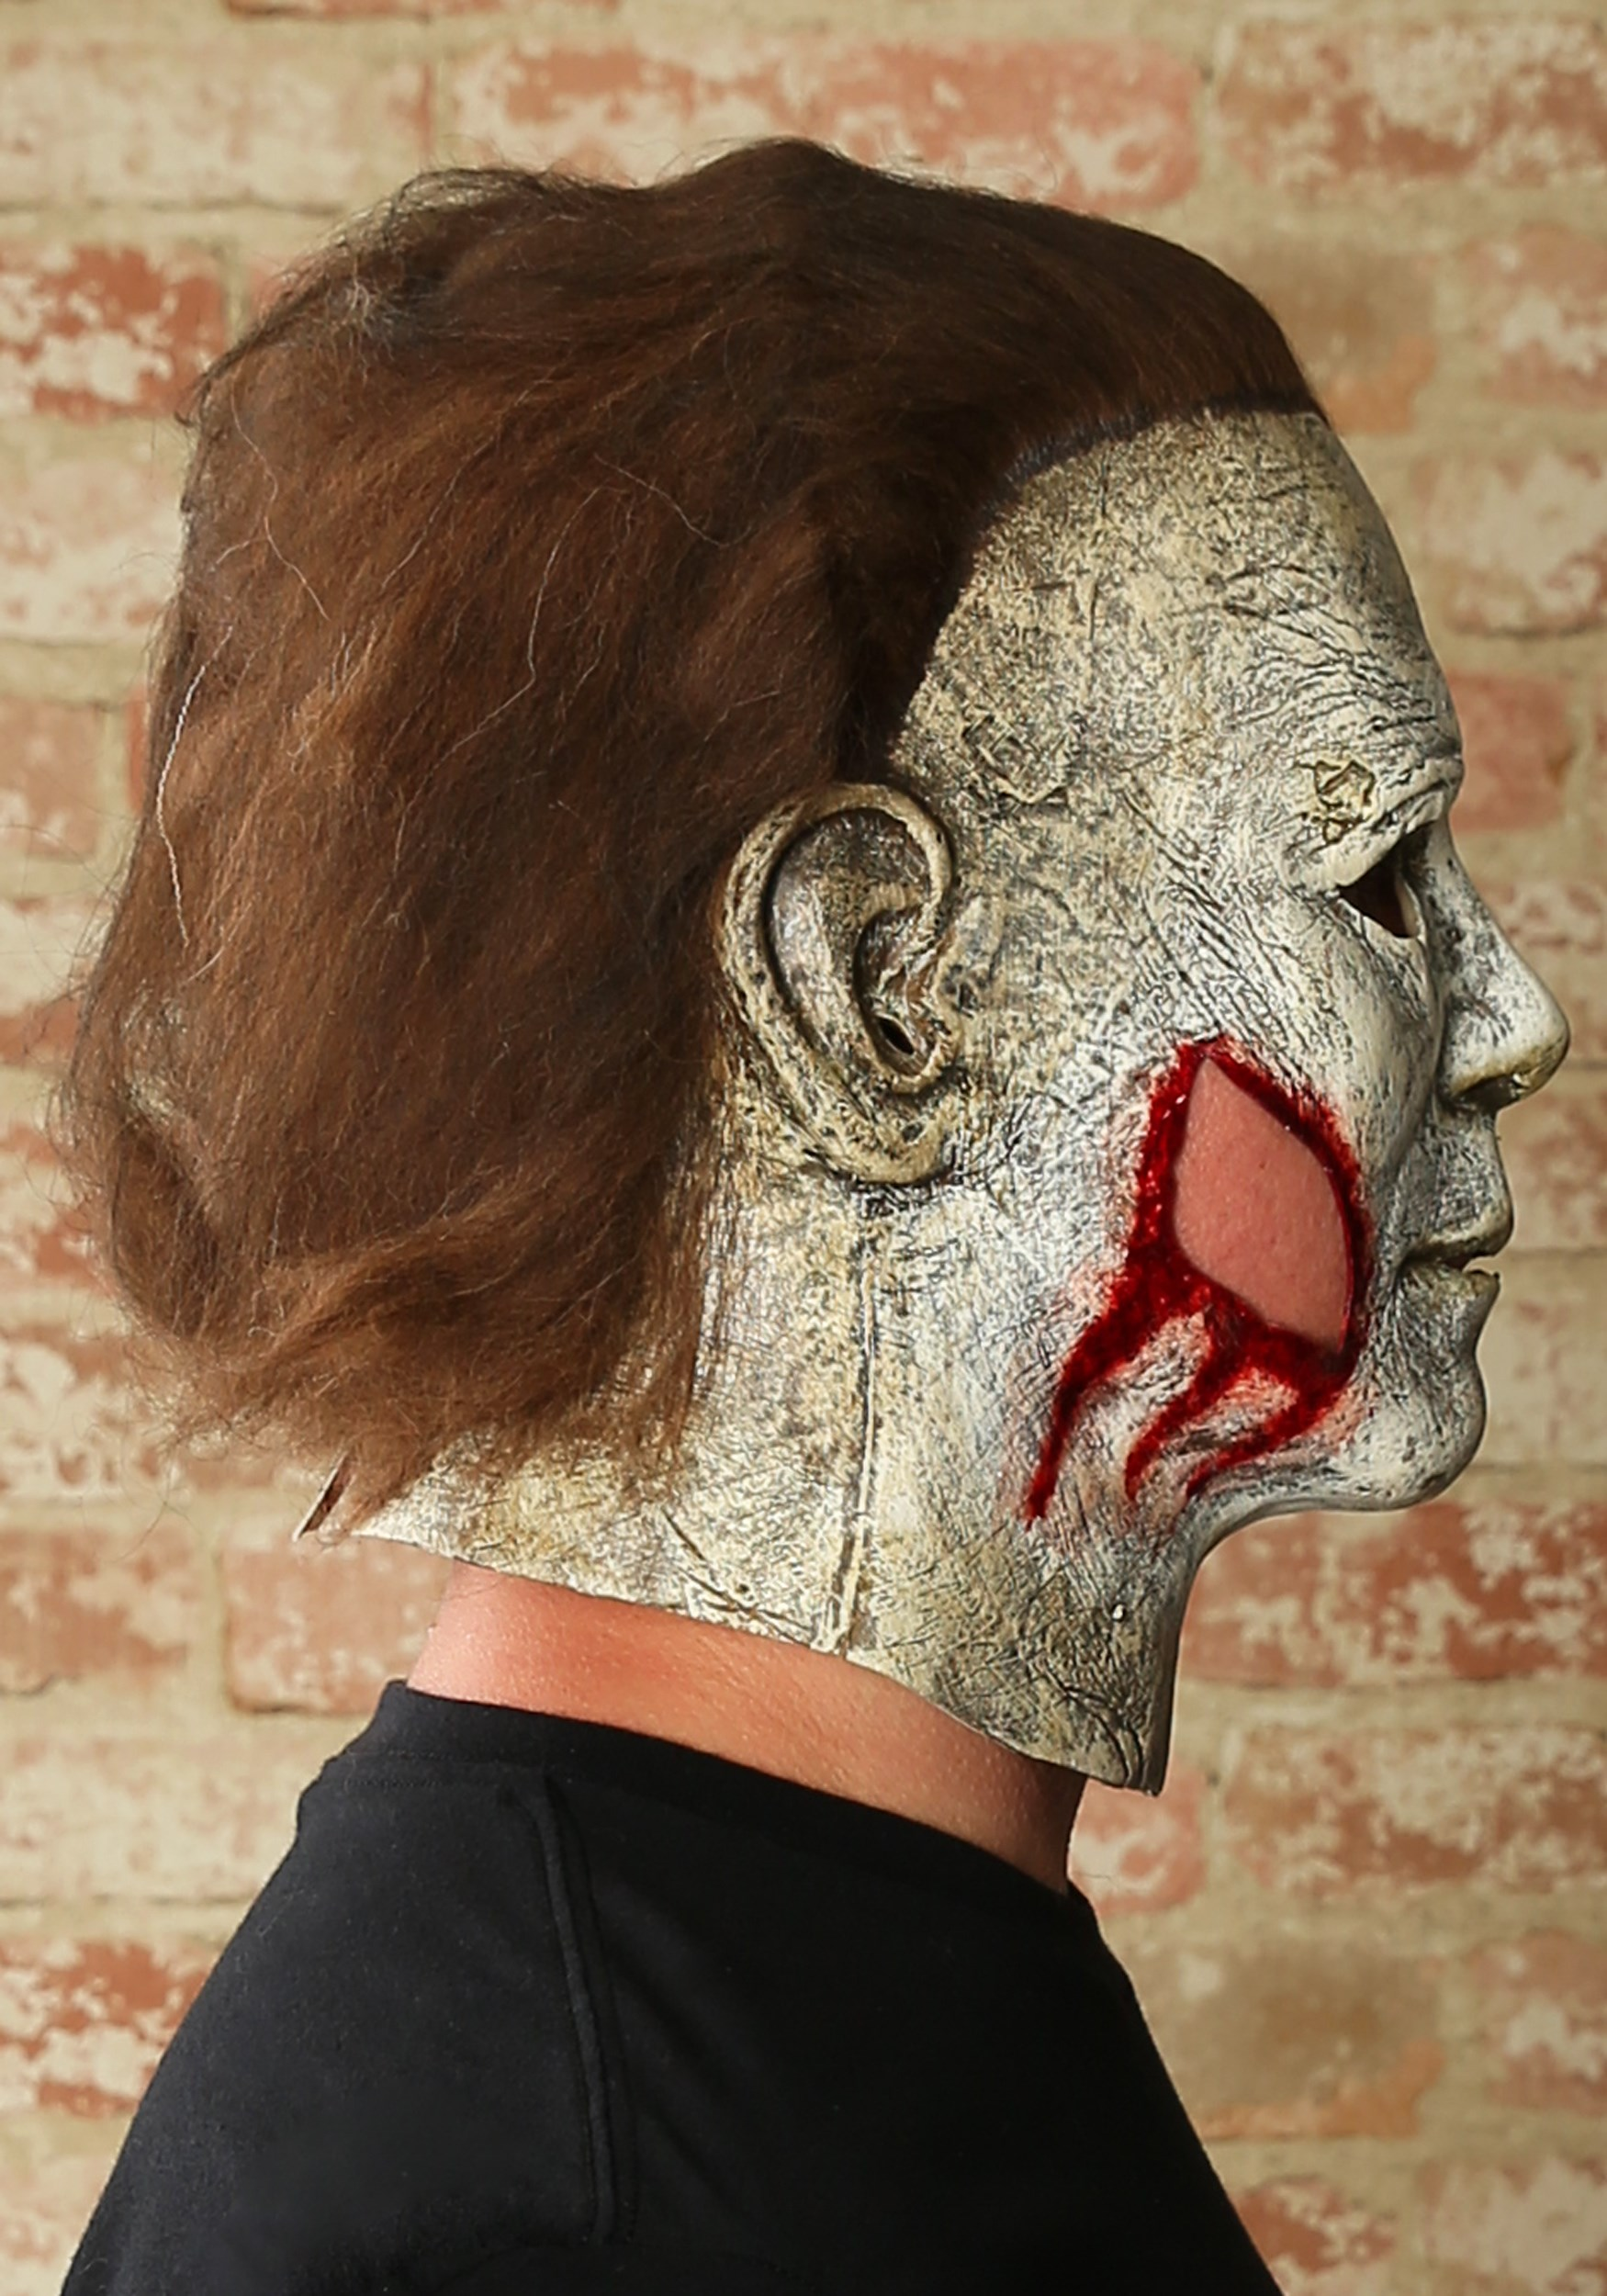 Halloween Sequel 2020 Final Confrontation With Michael Myers Michael Myers Halloween (2018) Final Battle Mask